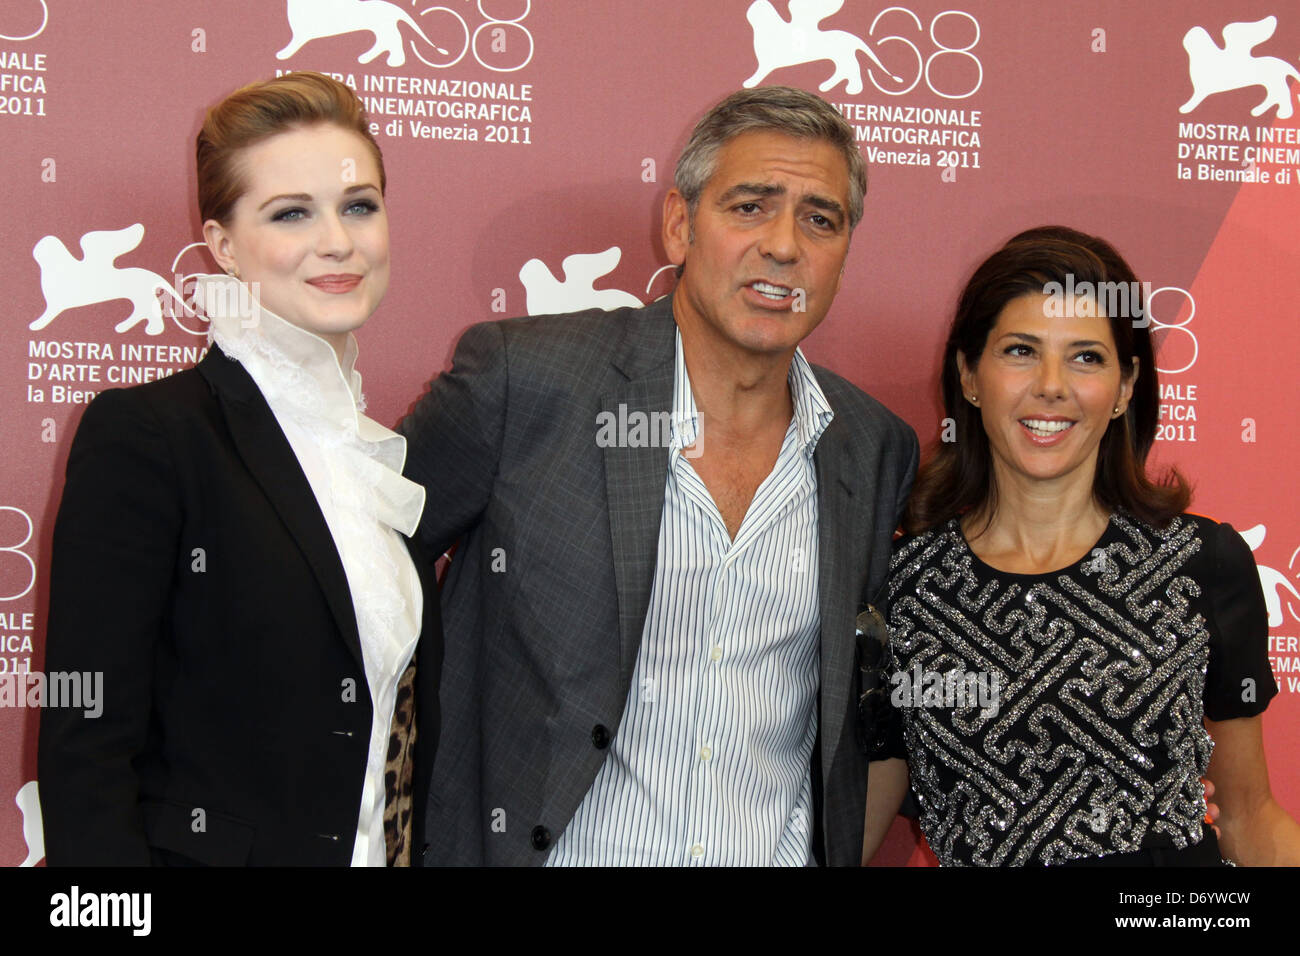 Evan Rachel Wood, George Clooney and Marisa Tomei 68th Venice Film Festival - Day 1- 'The Ides of March' - Stock Image